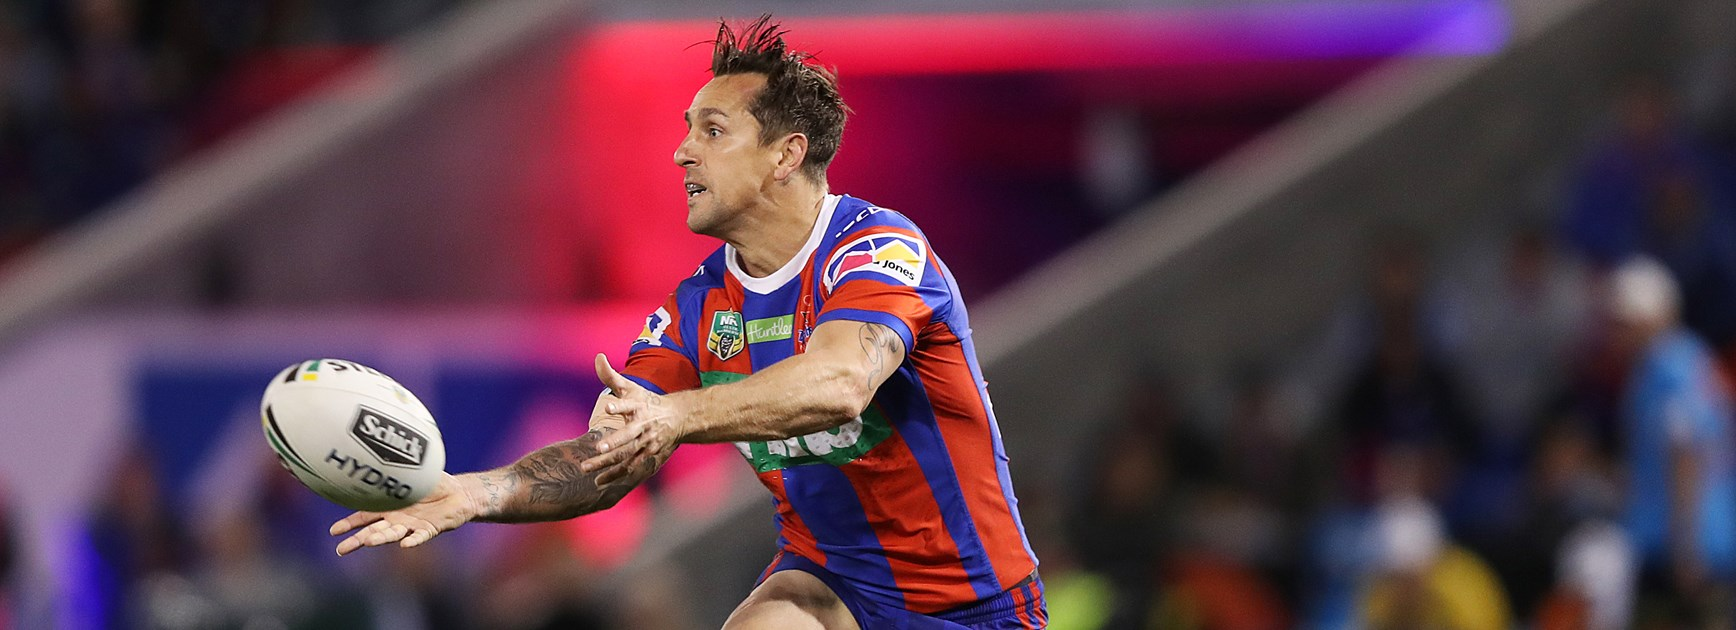 Pearce timeline: Junior's journey to 250 NRL games